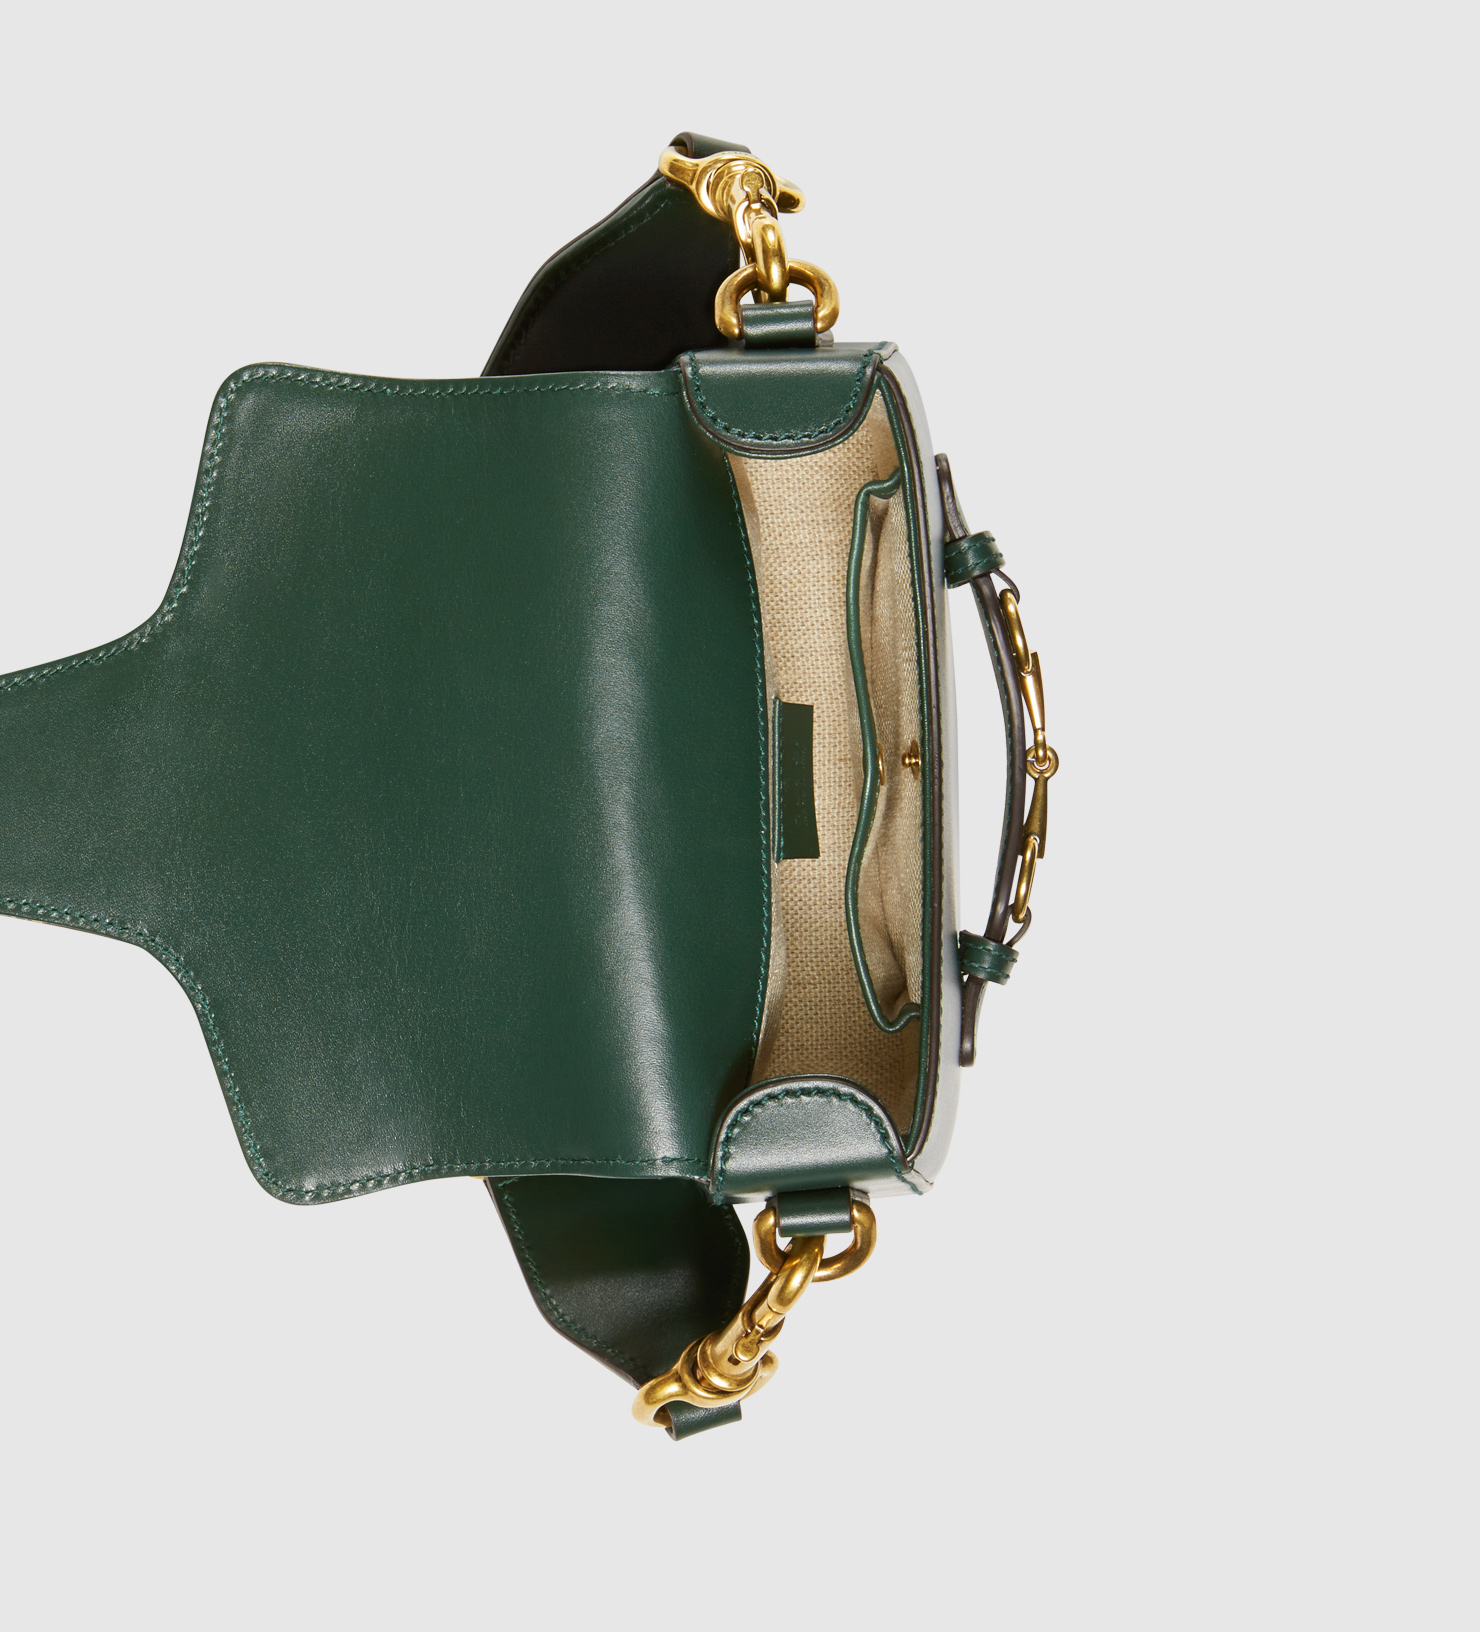 6f499d8a3f Gucci Lady Web Leather Shoulder Bag in Green - Lyst